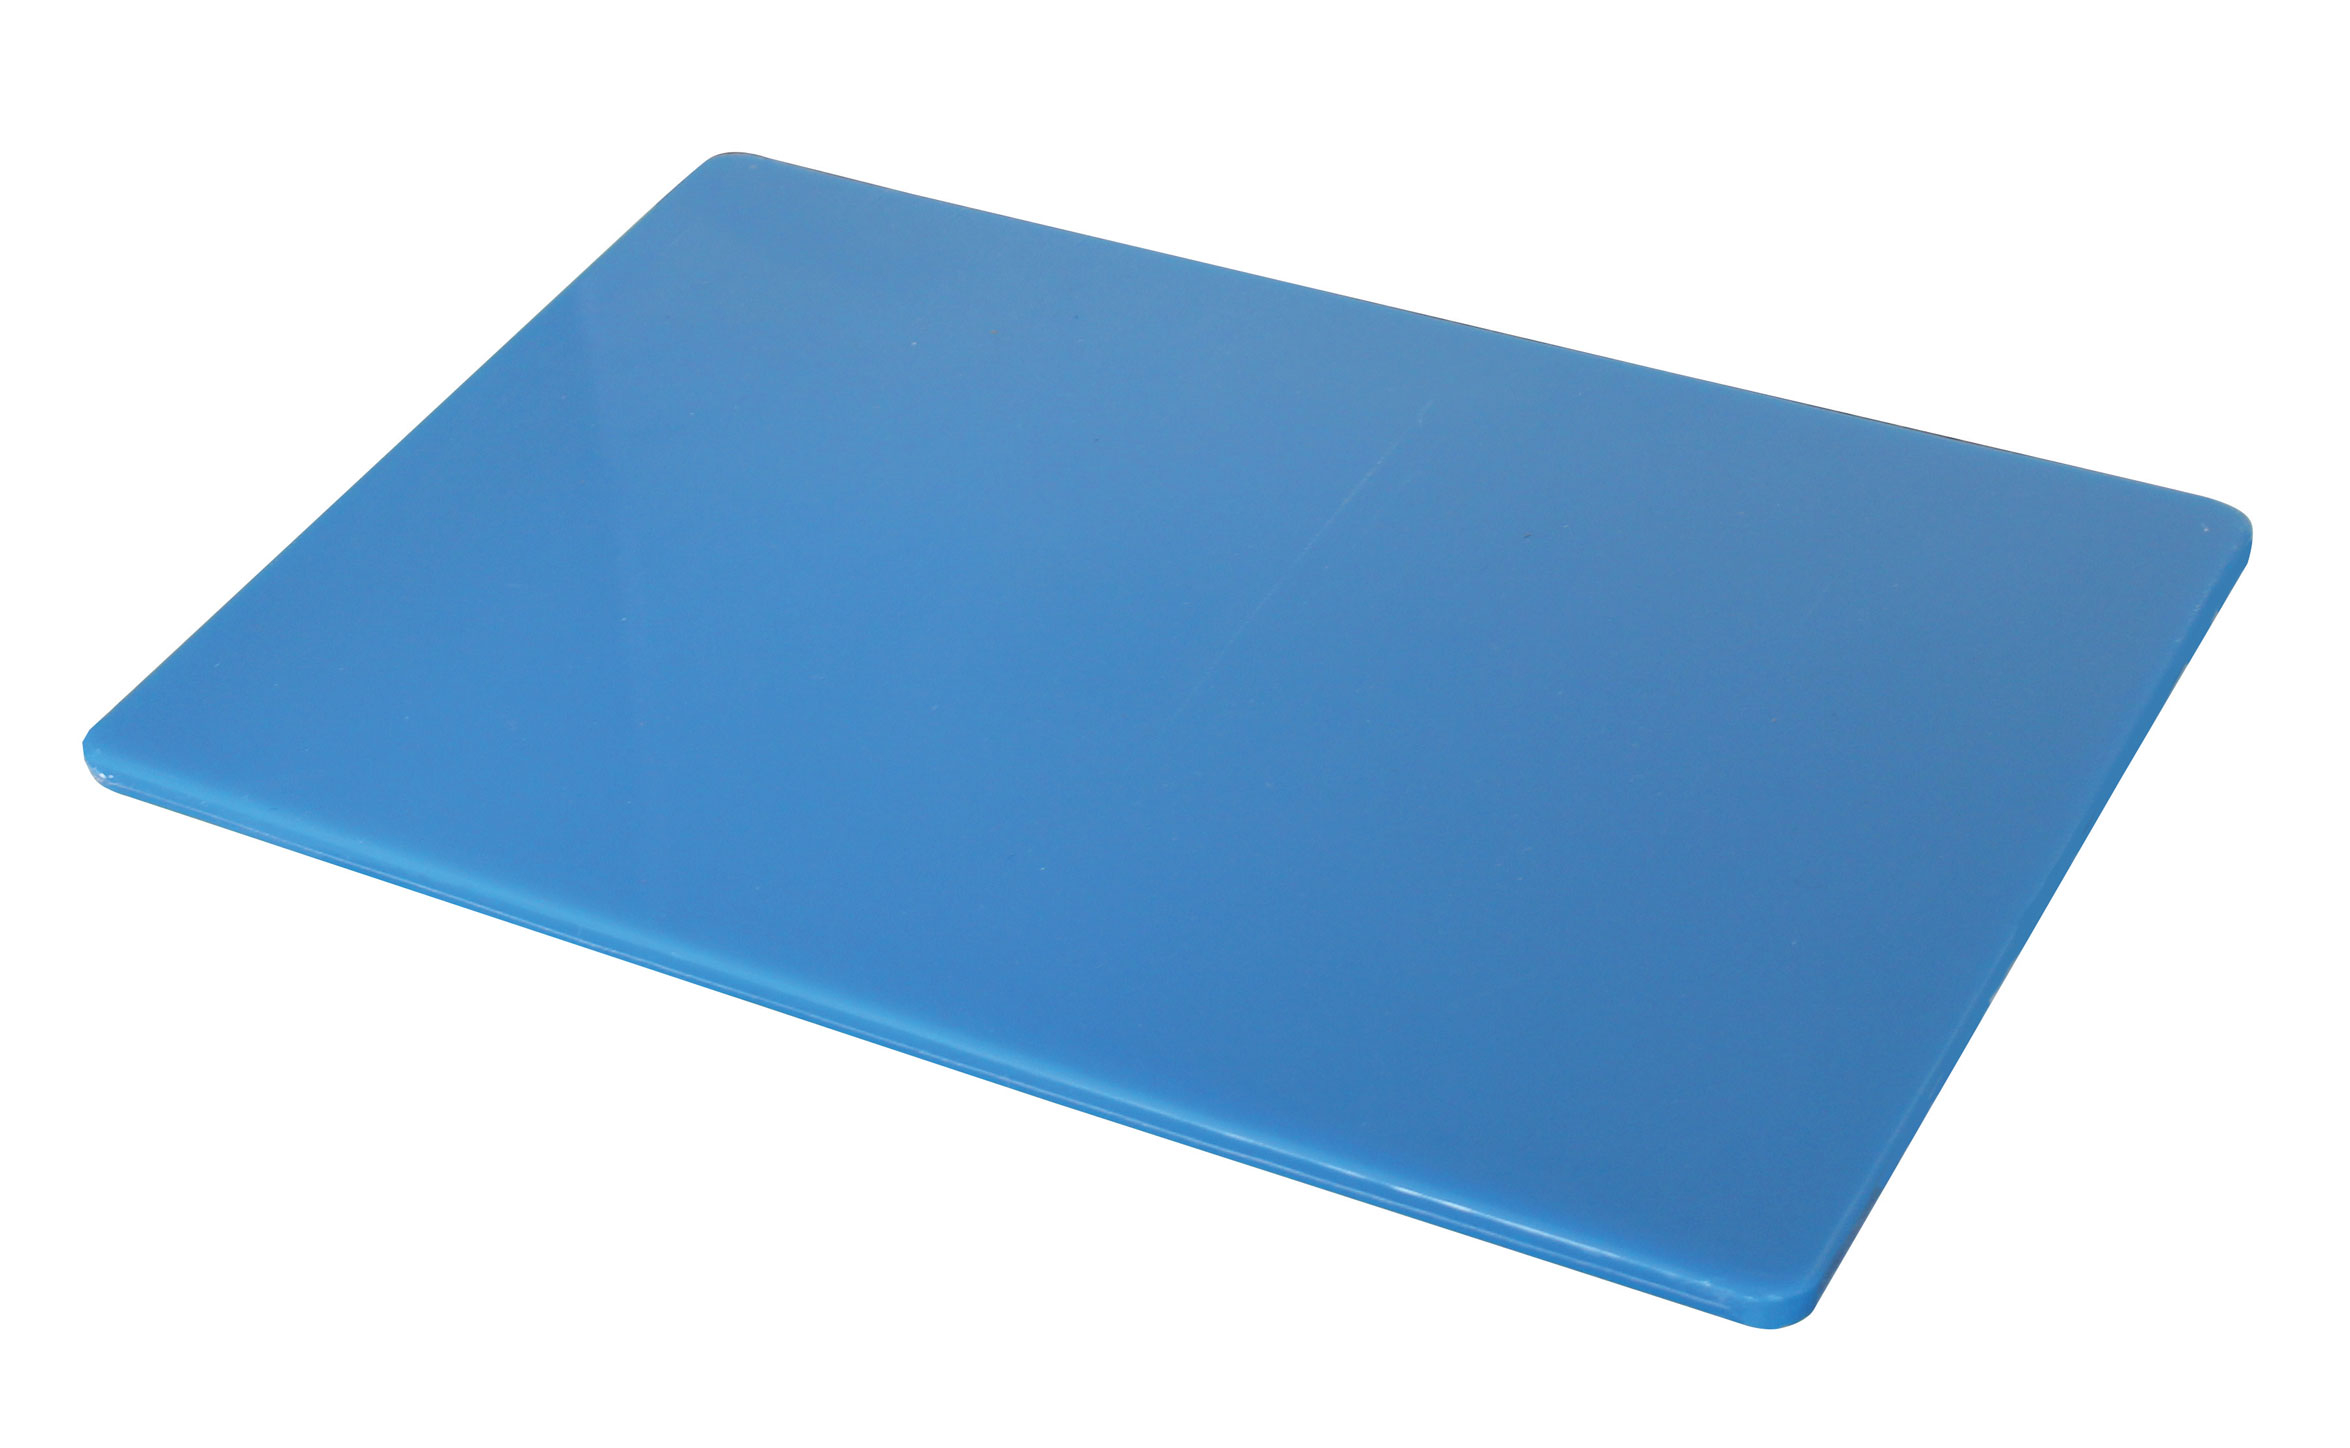 Blue High Density Standard Siz e Chopping Board 457 x 300 x 12.7 mm